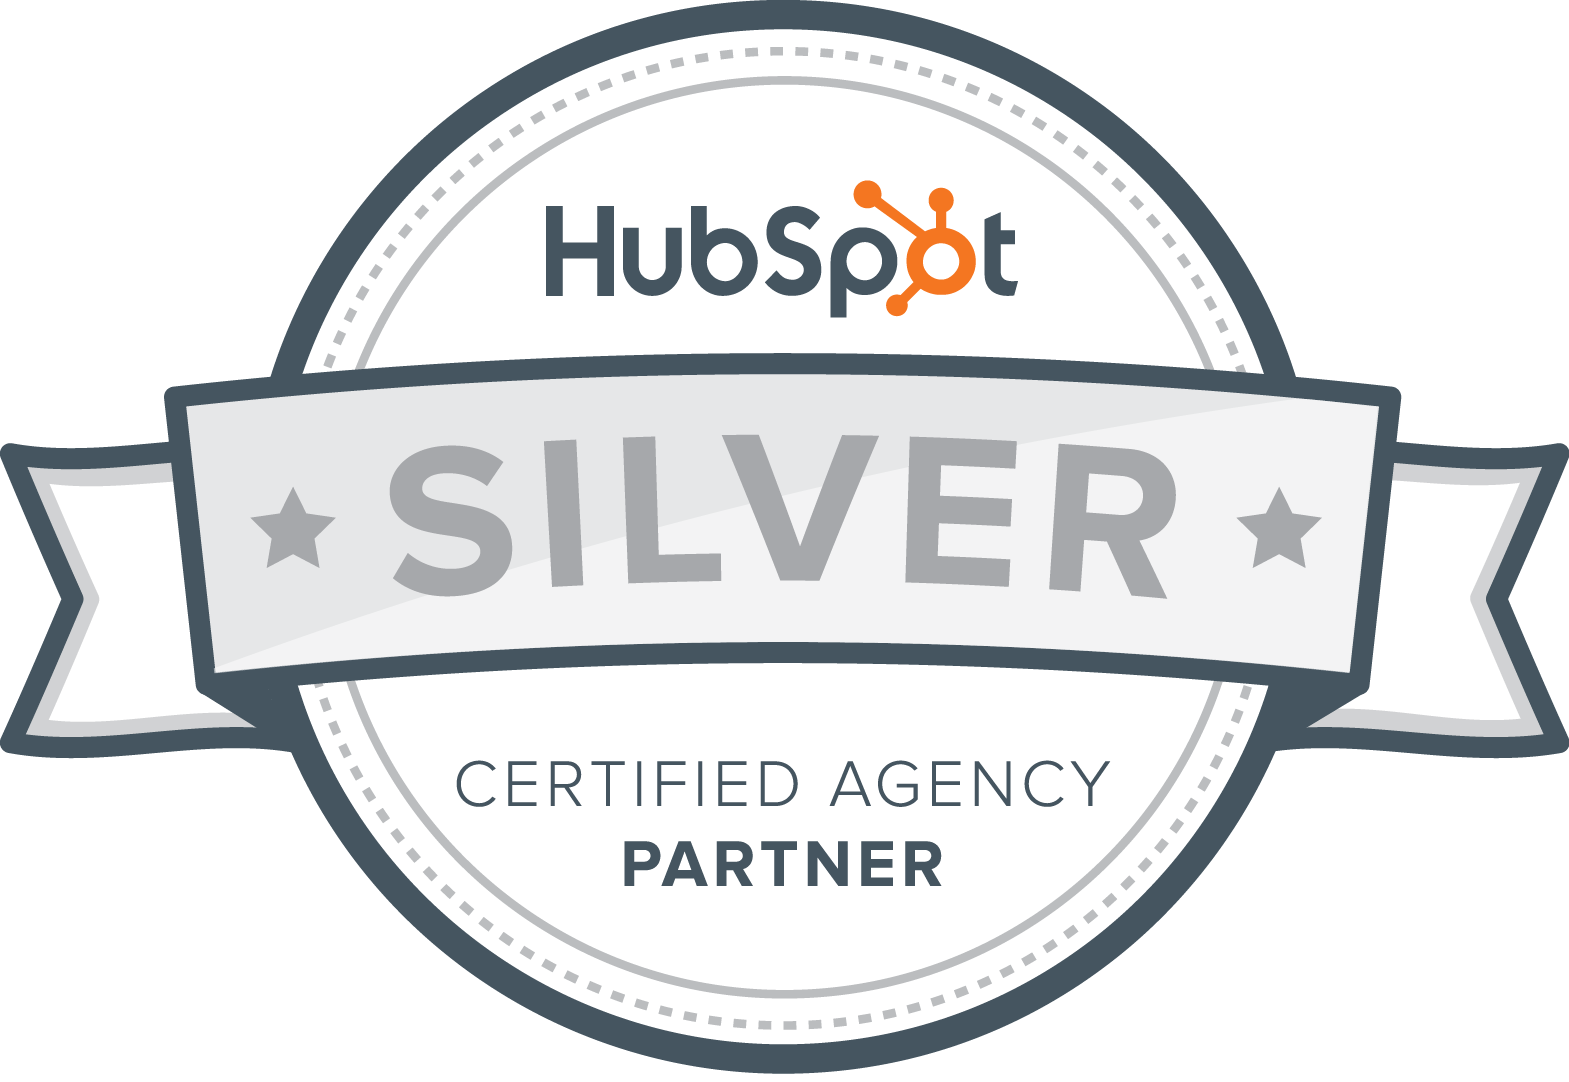 Certification Hubspot Silver